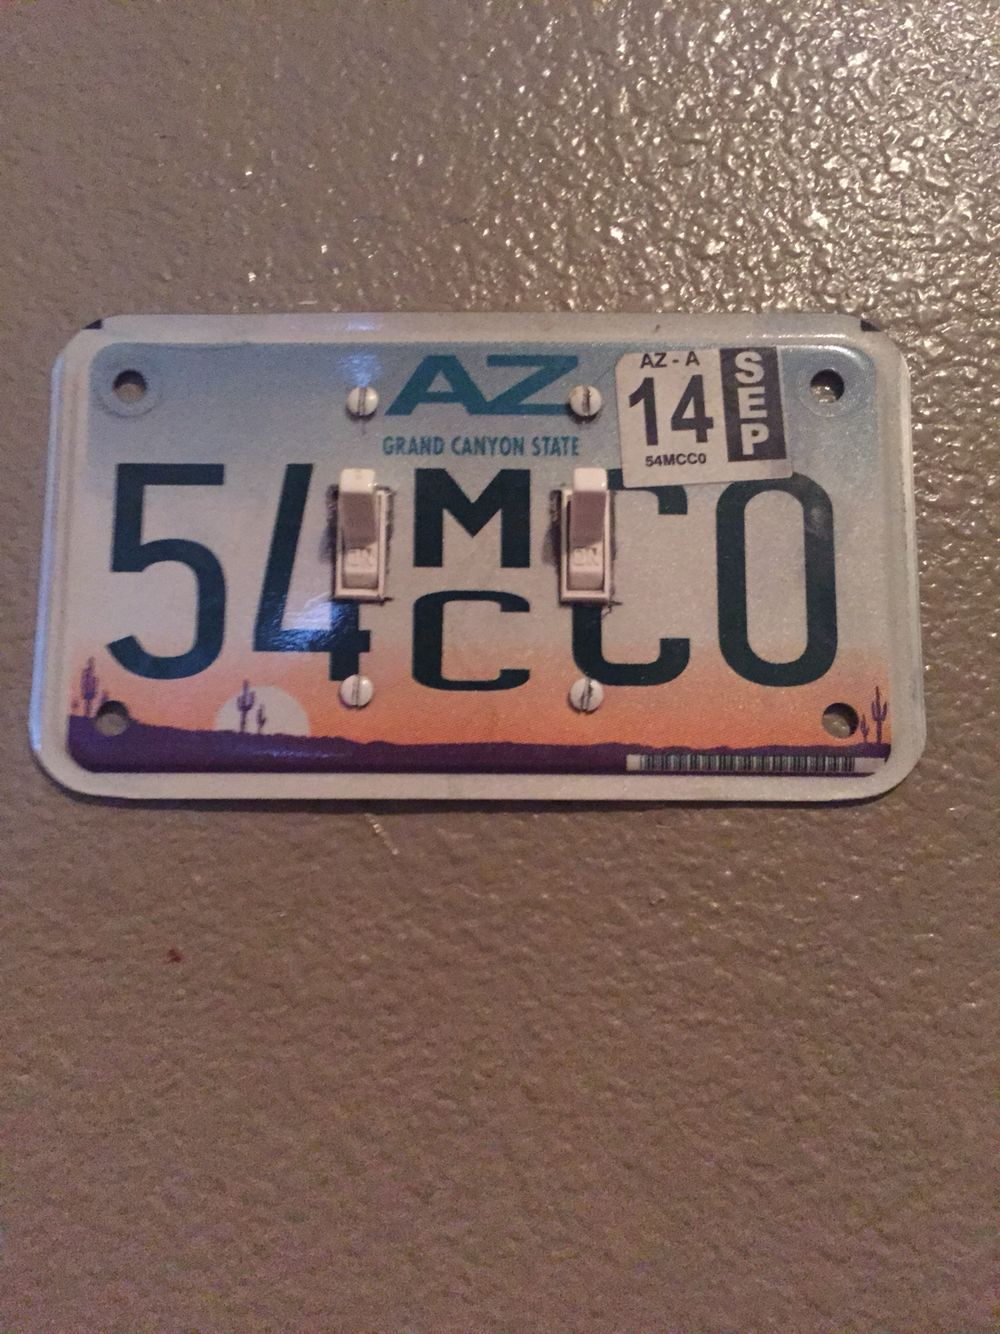 My husband turned a motorcycle license plate into a light switch ...